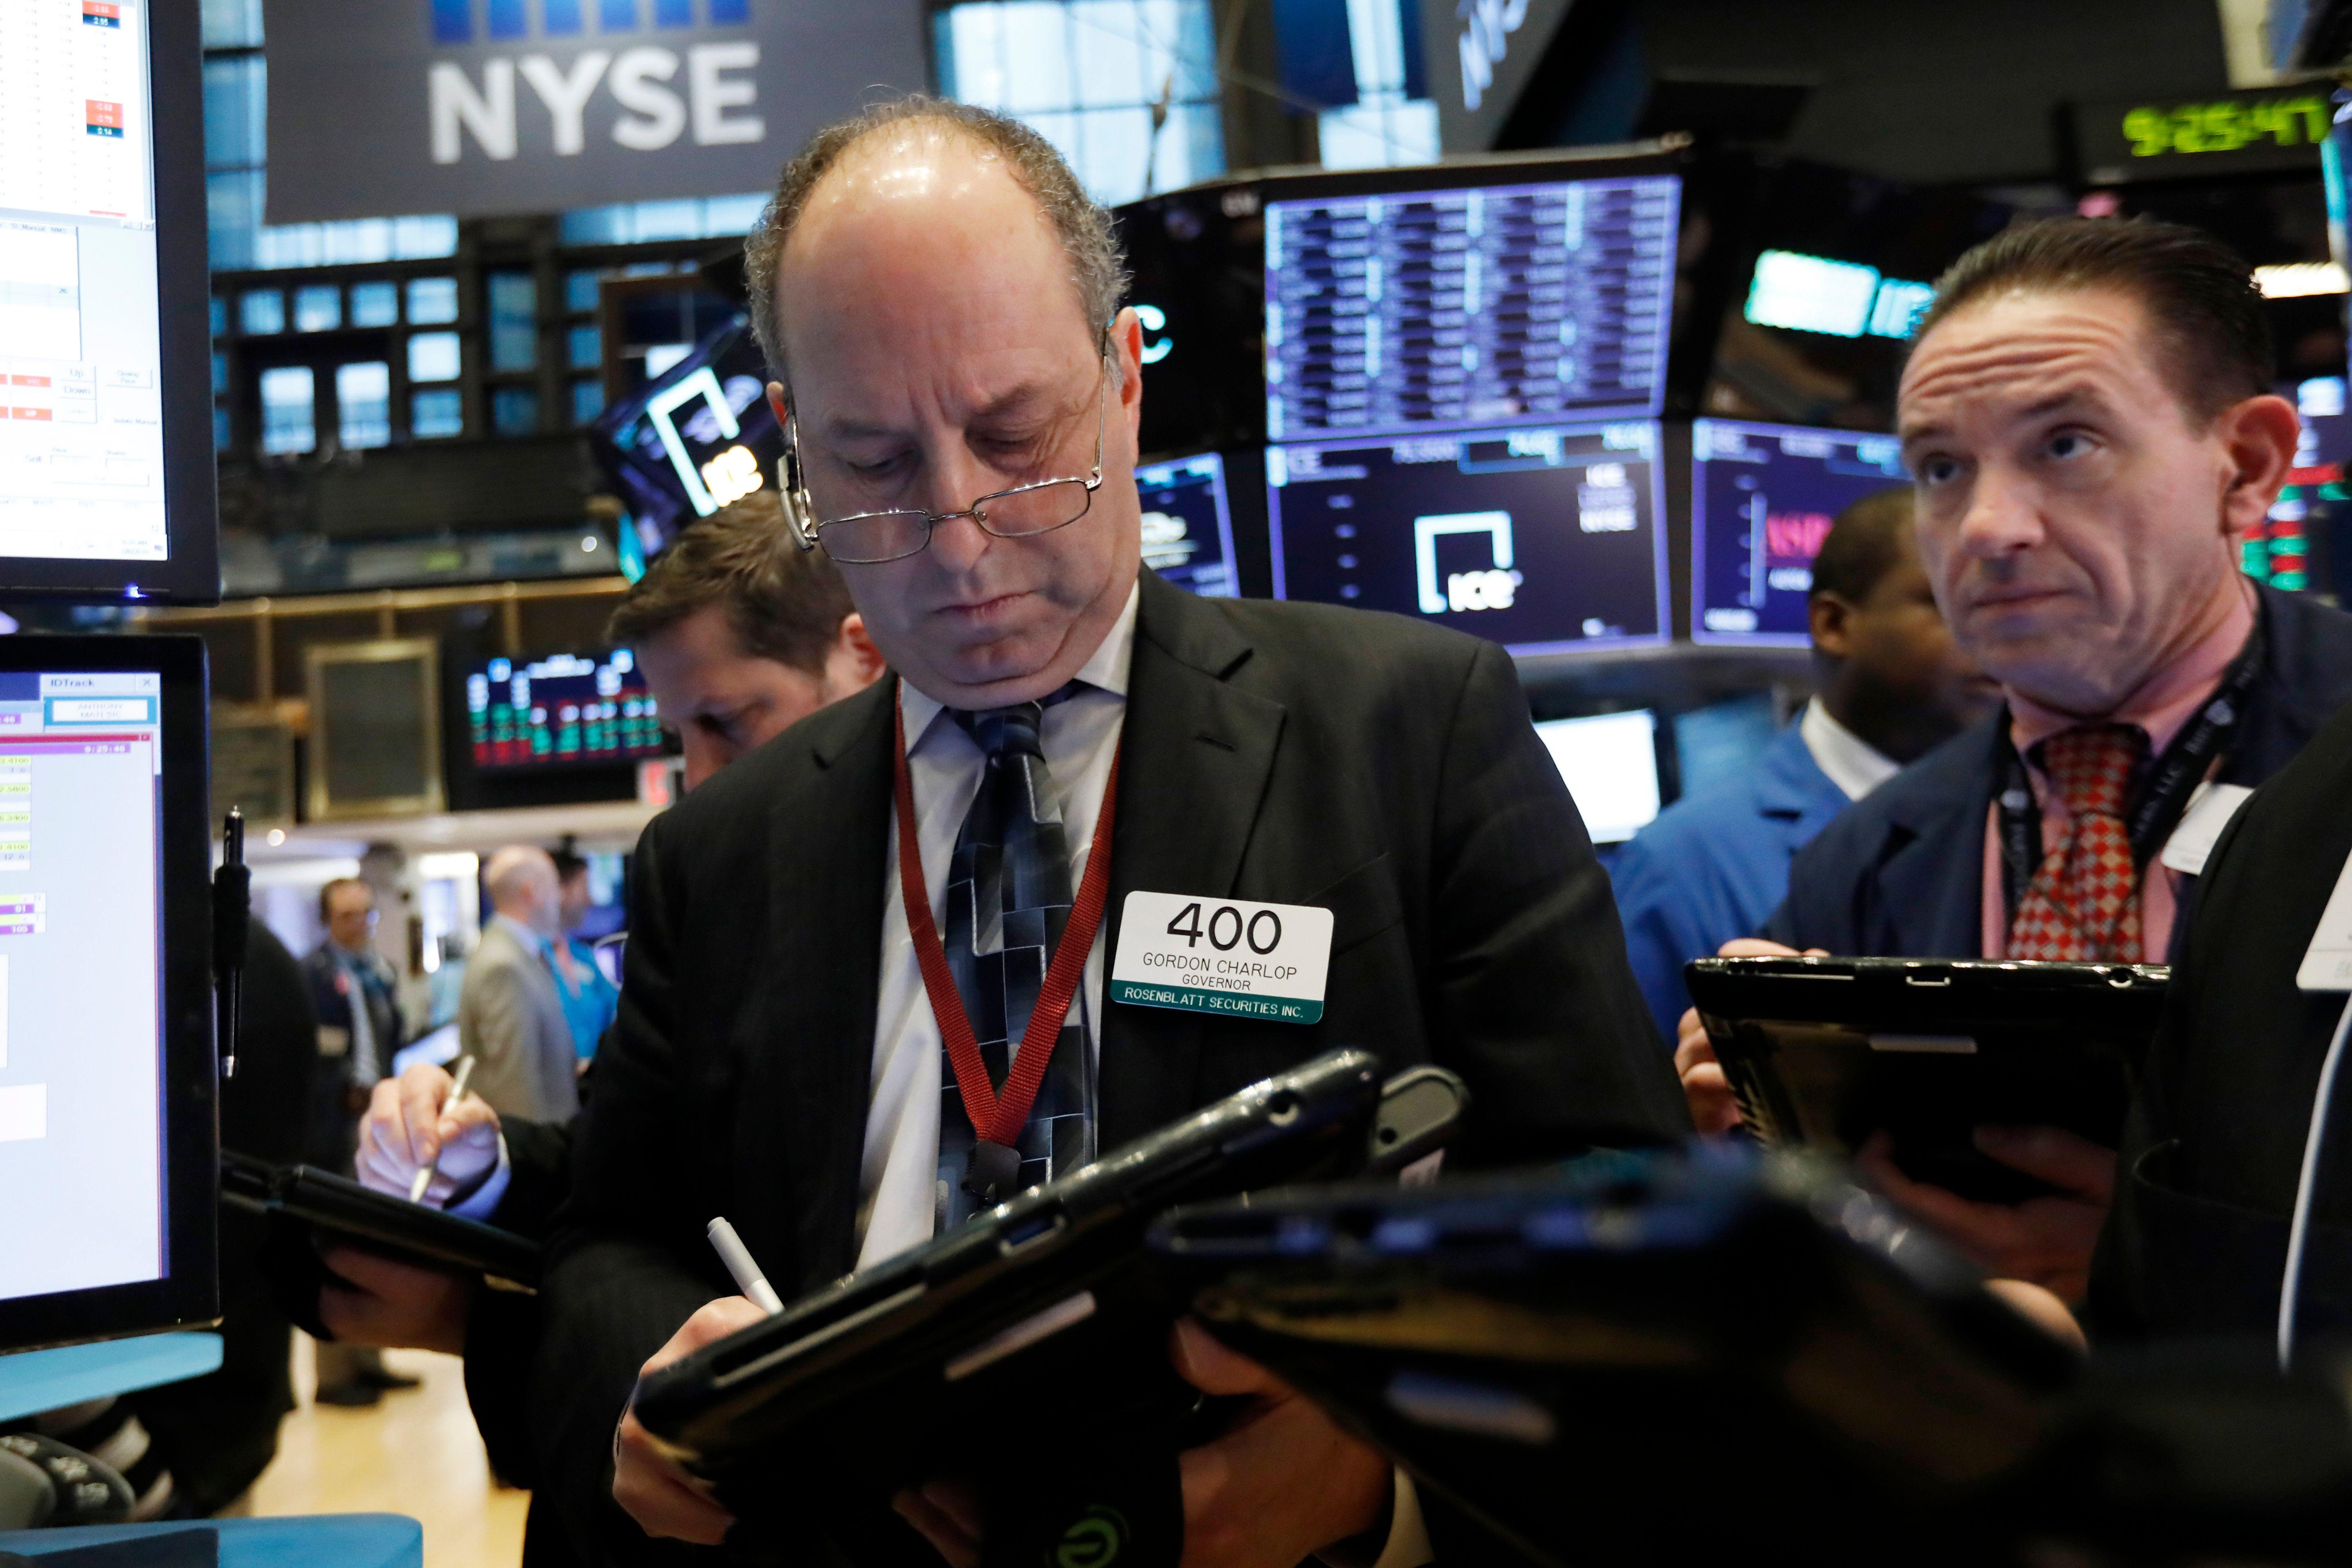 Analysts are split on a retest of the Christmas Eve lows, but agree stocks face headwinds